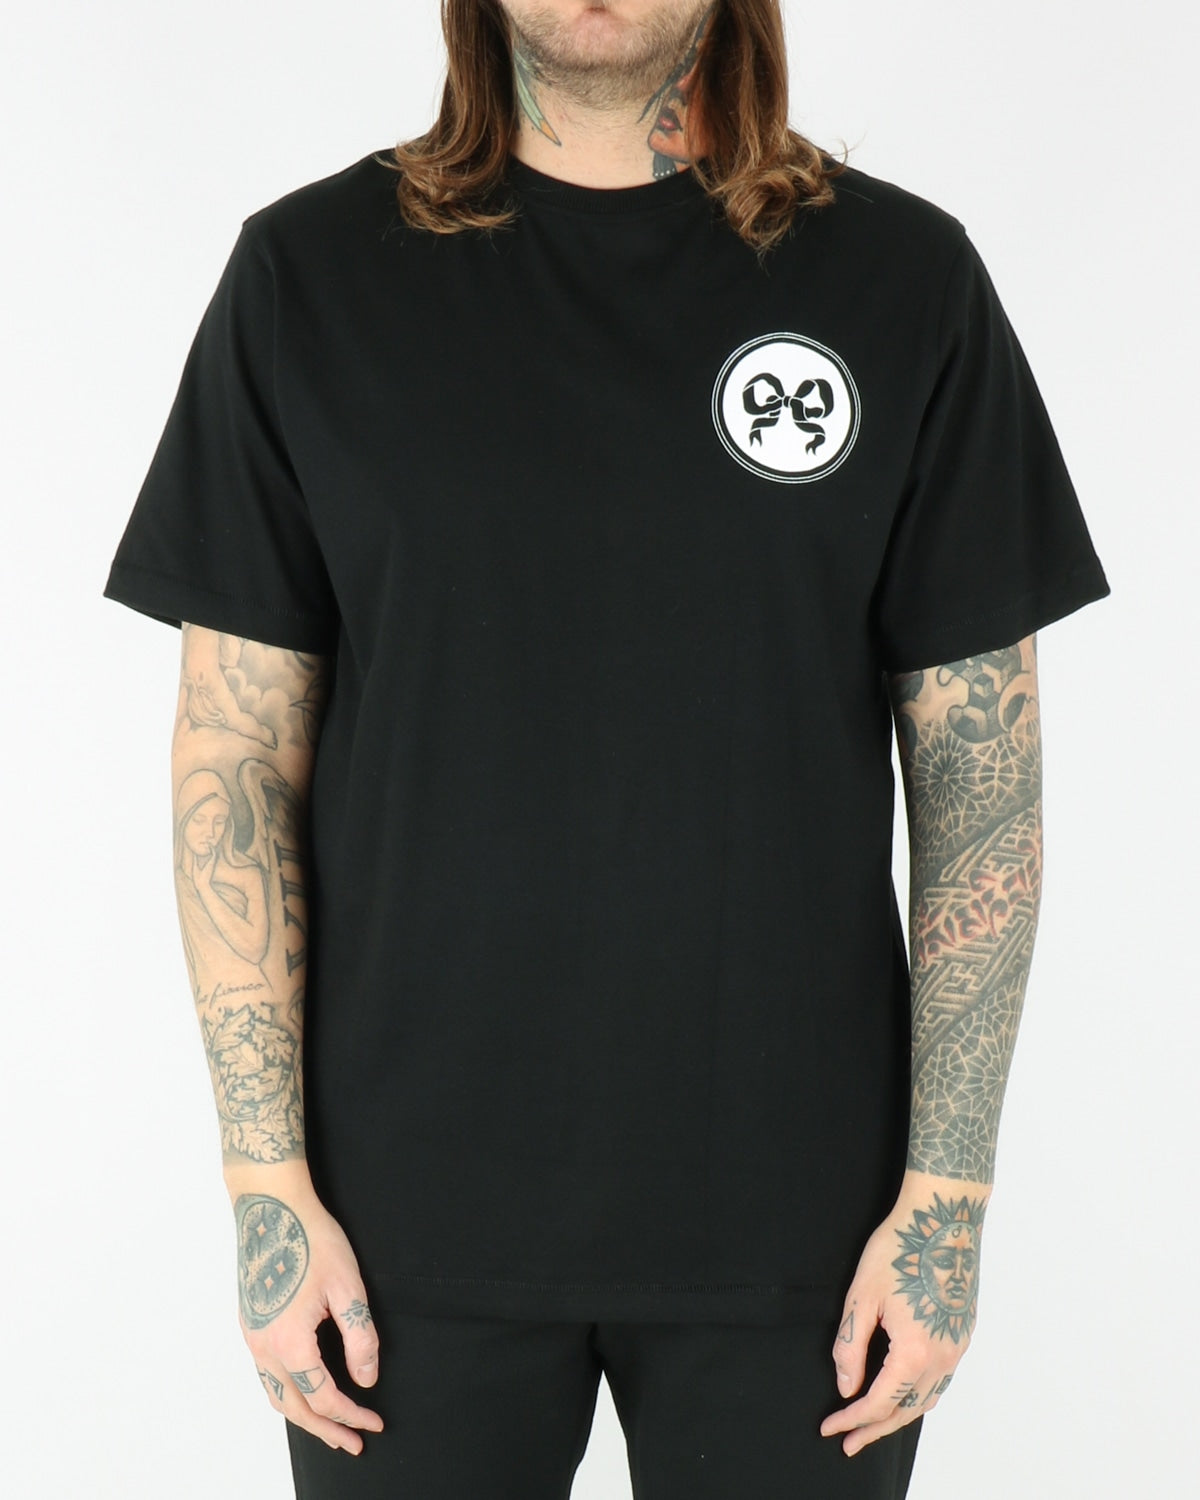 soulland_ribbon t-shirt_black_view_2_3